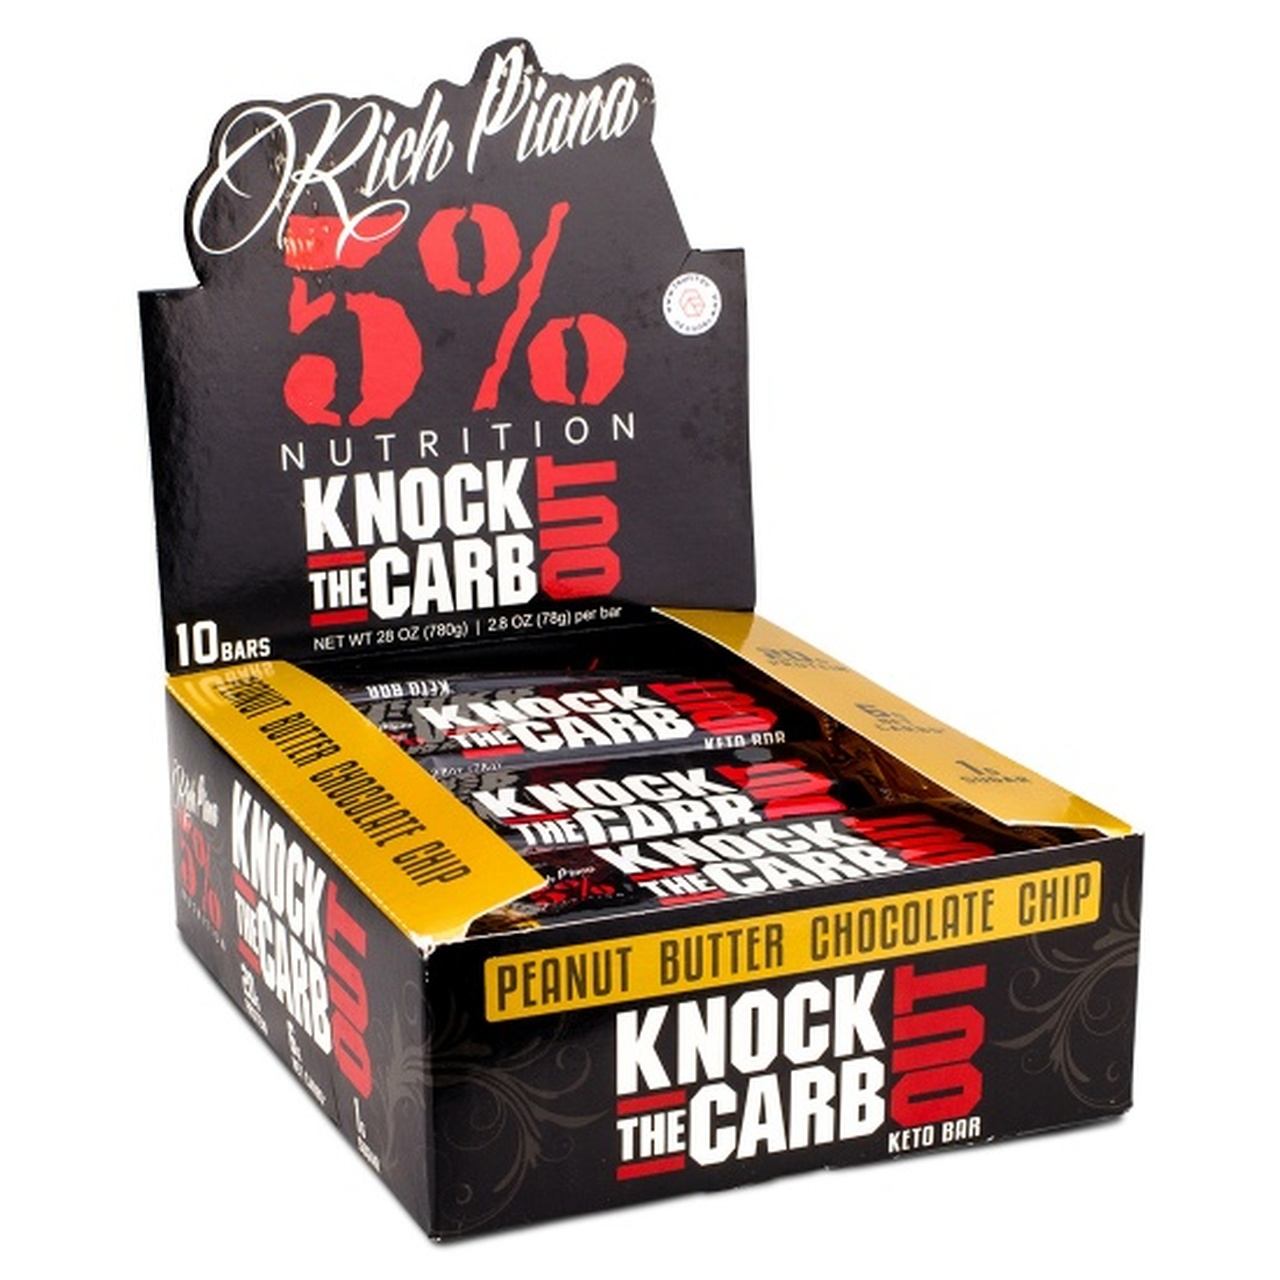 10 Barres Knock the carb out Rich Piana